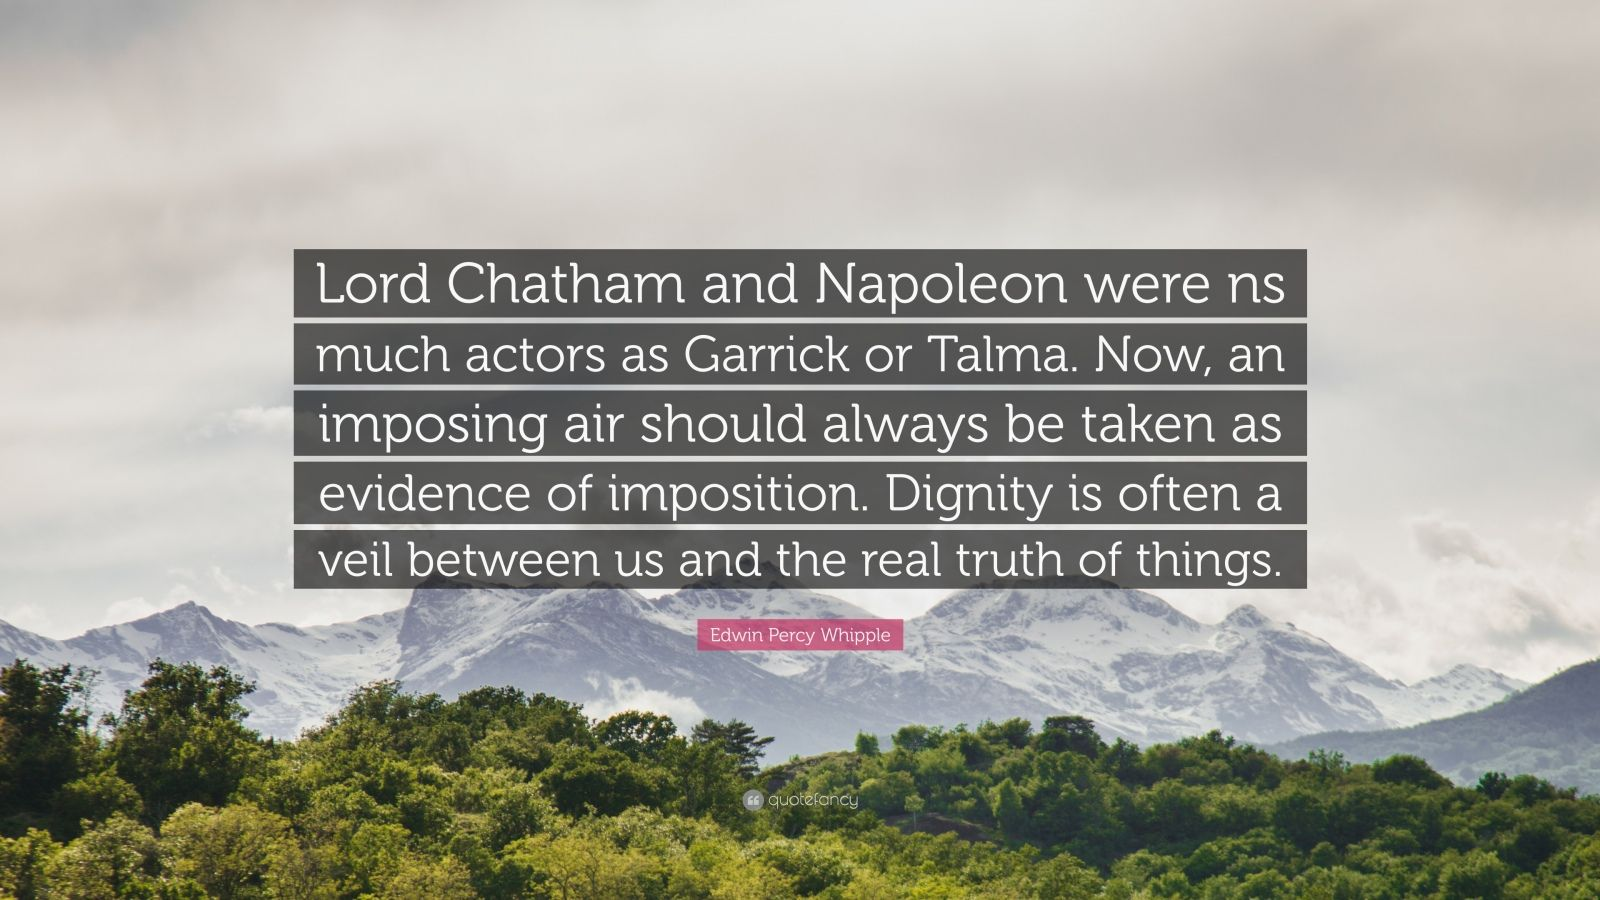 """Edwin Percy Whipple Quote: """"Lord Chatham and Napoleon were ns much actors as Garrick or Talma. Now, an imposing air should always be taken as evidence of imposition. Dignity is often a veil between us and the real truth of things."""""""